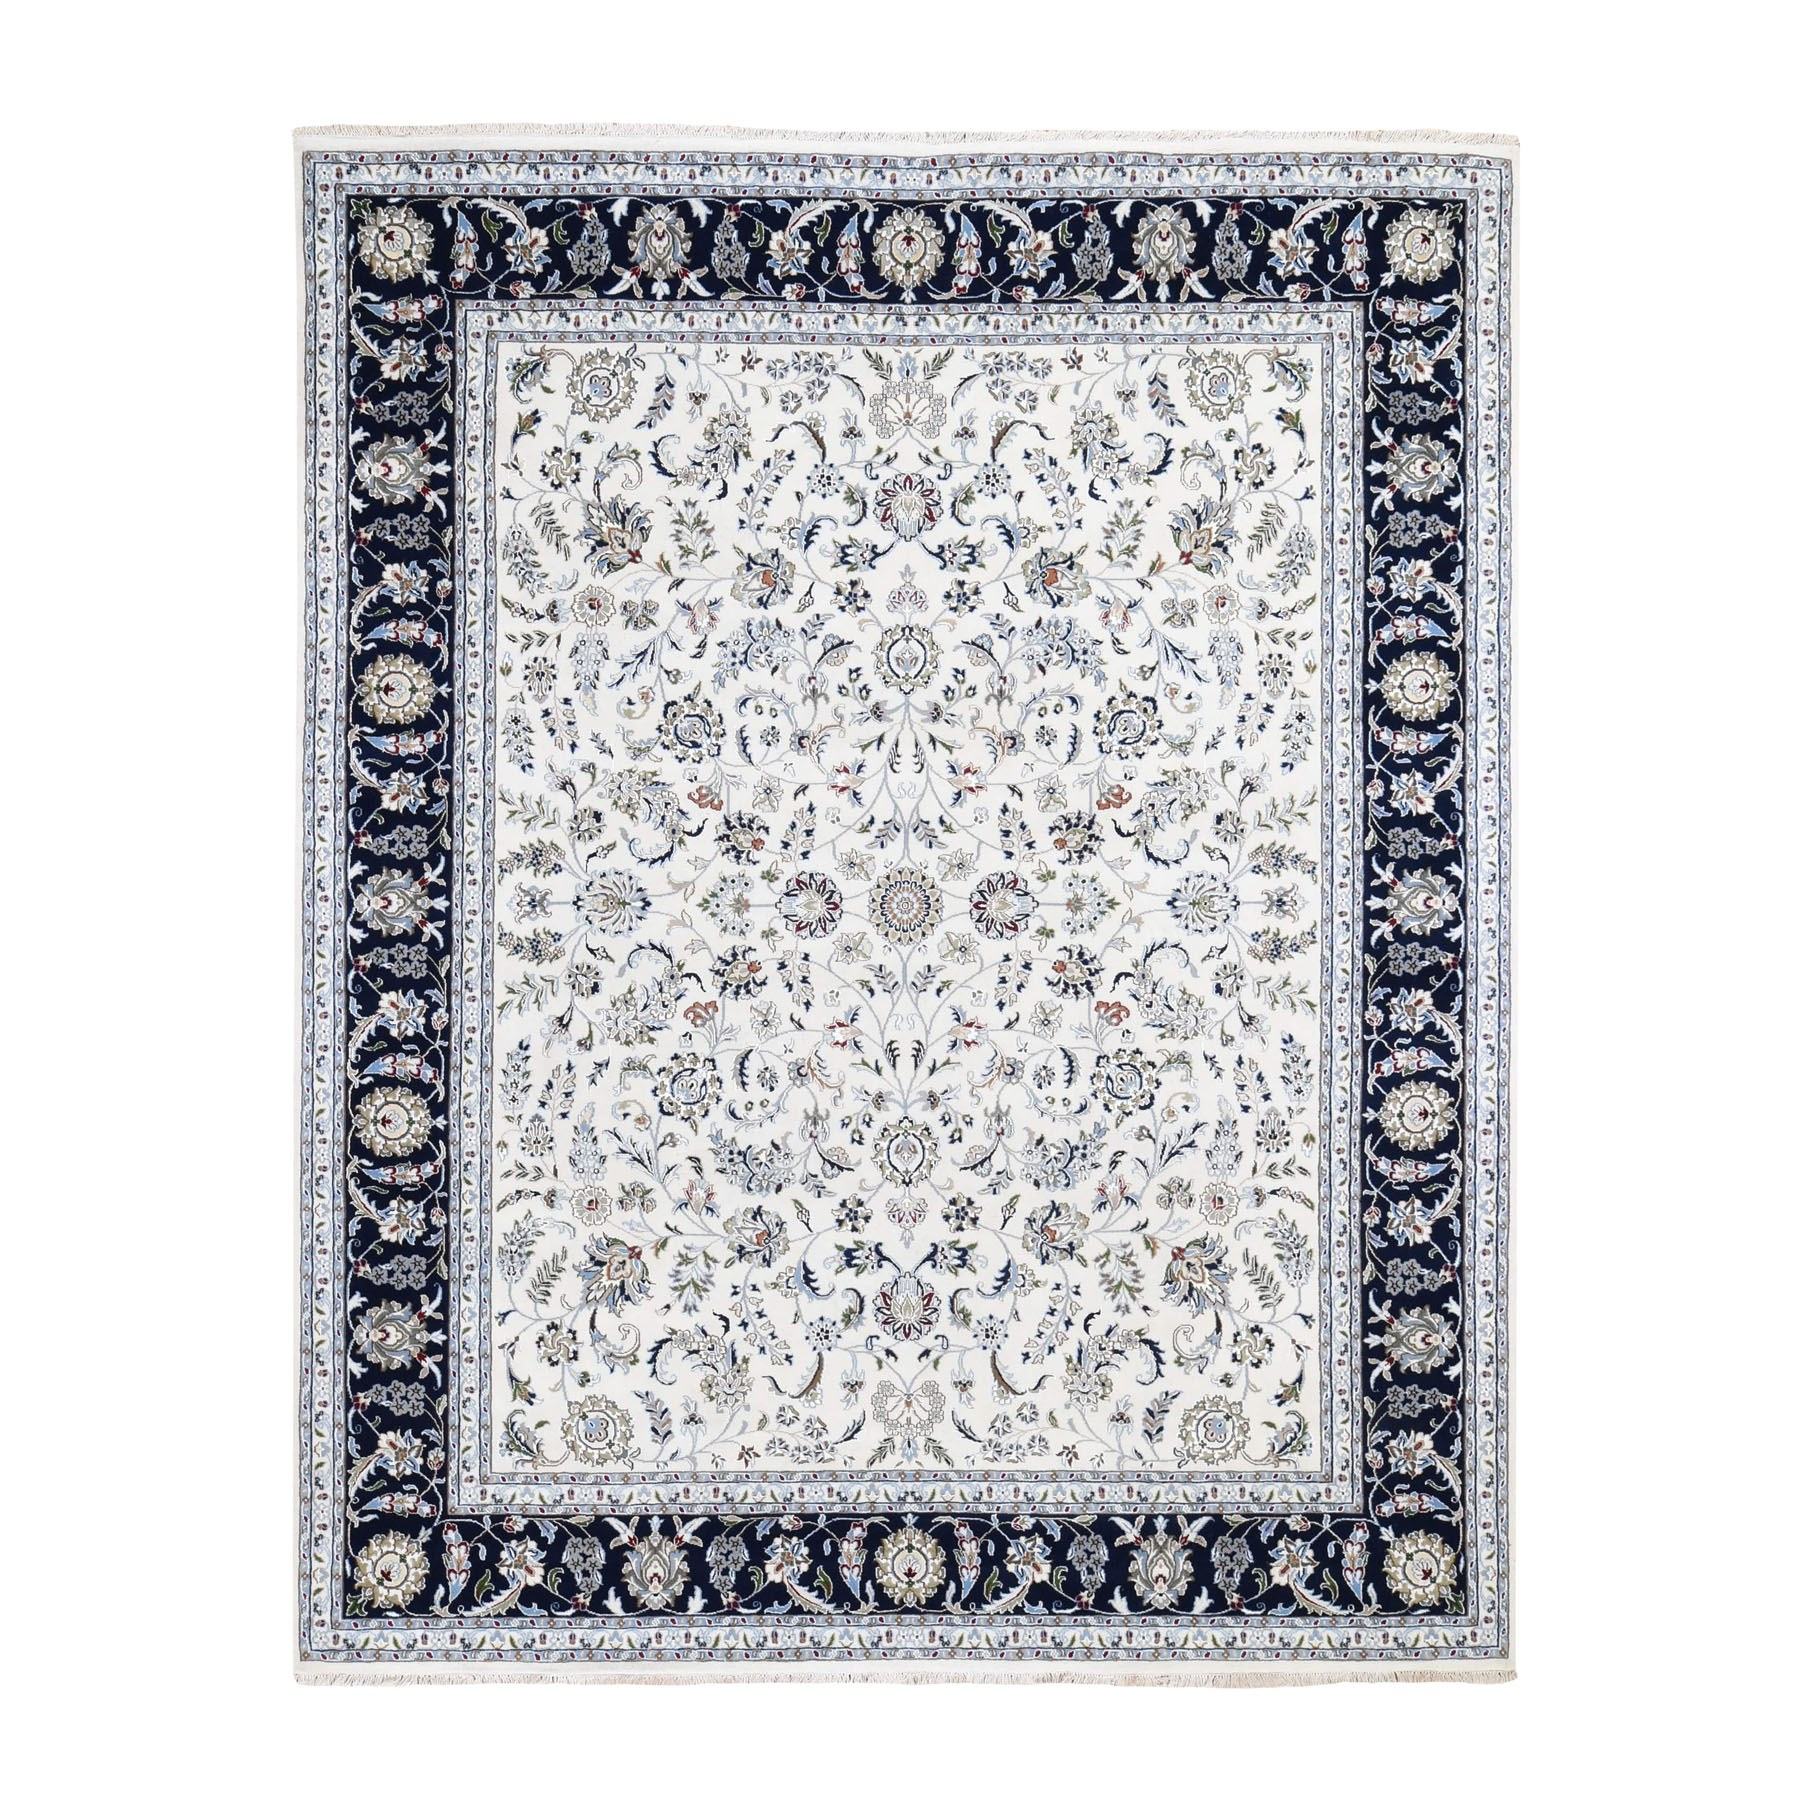 8'X10' Wool And Silk 250 Kpsi All Over Design Ivory Nain Hand Knotted Oriental Rug moad78b9